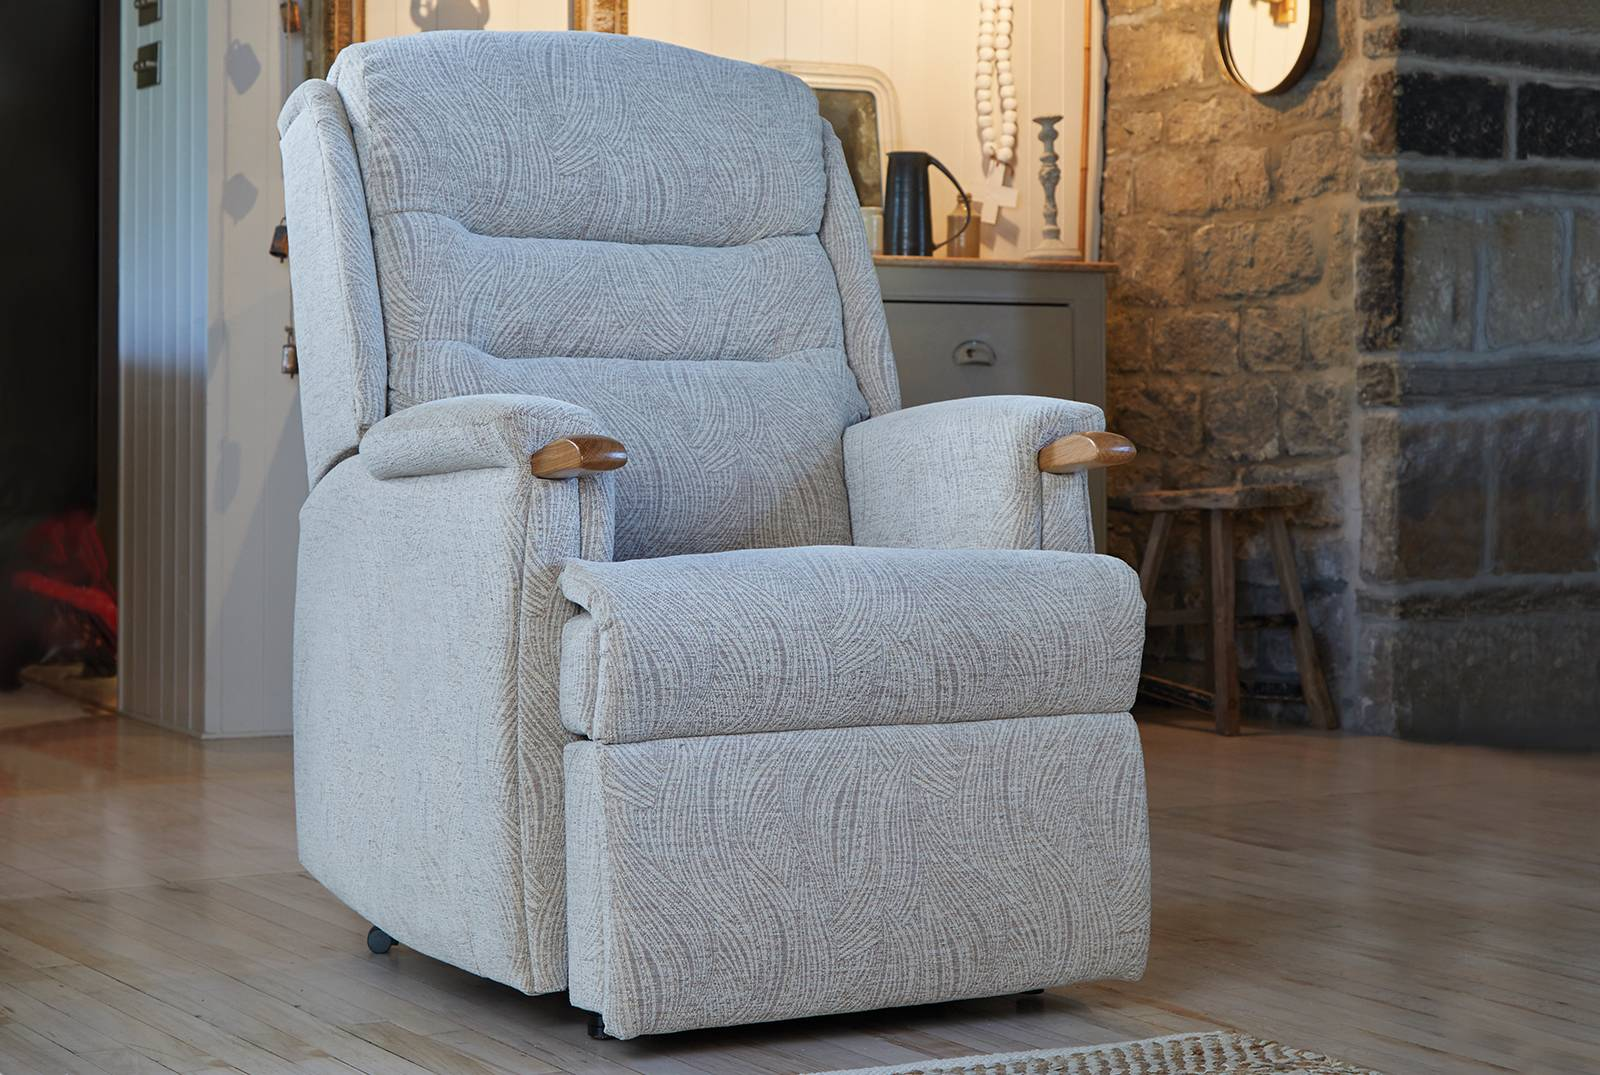 Ripley Comfort Chair with Knuckles